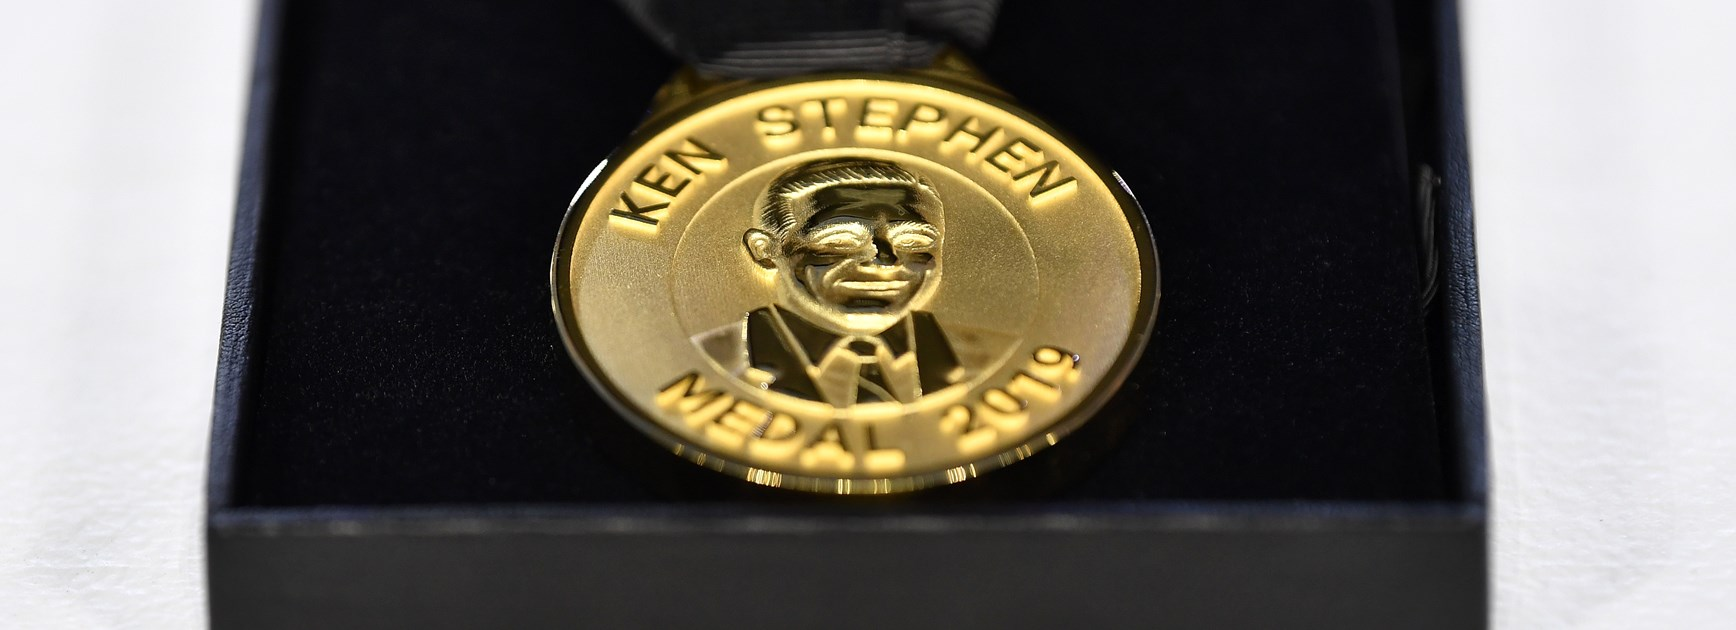 Ken Stephen Medal nominees announced